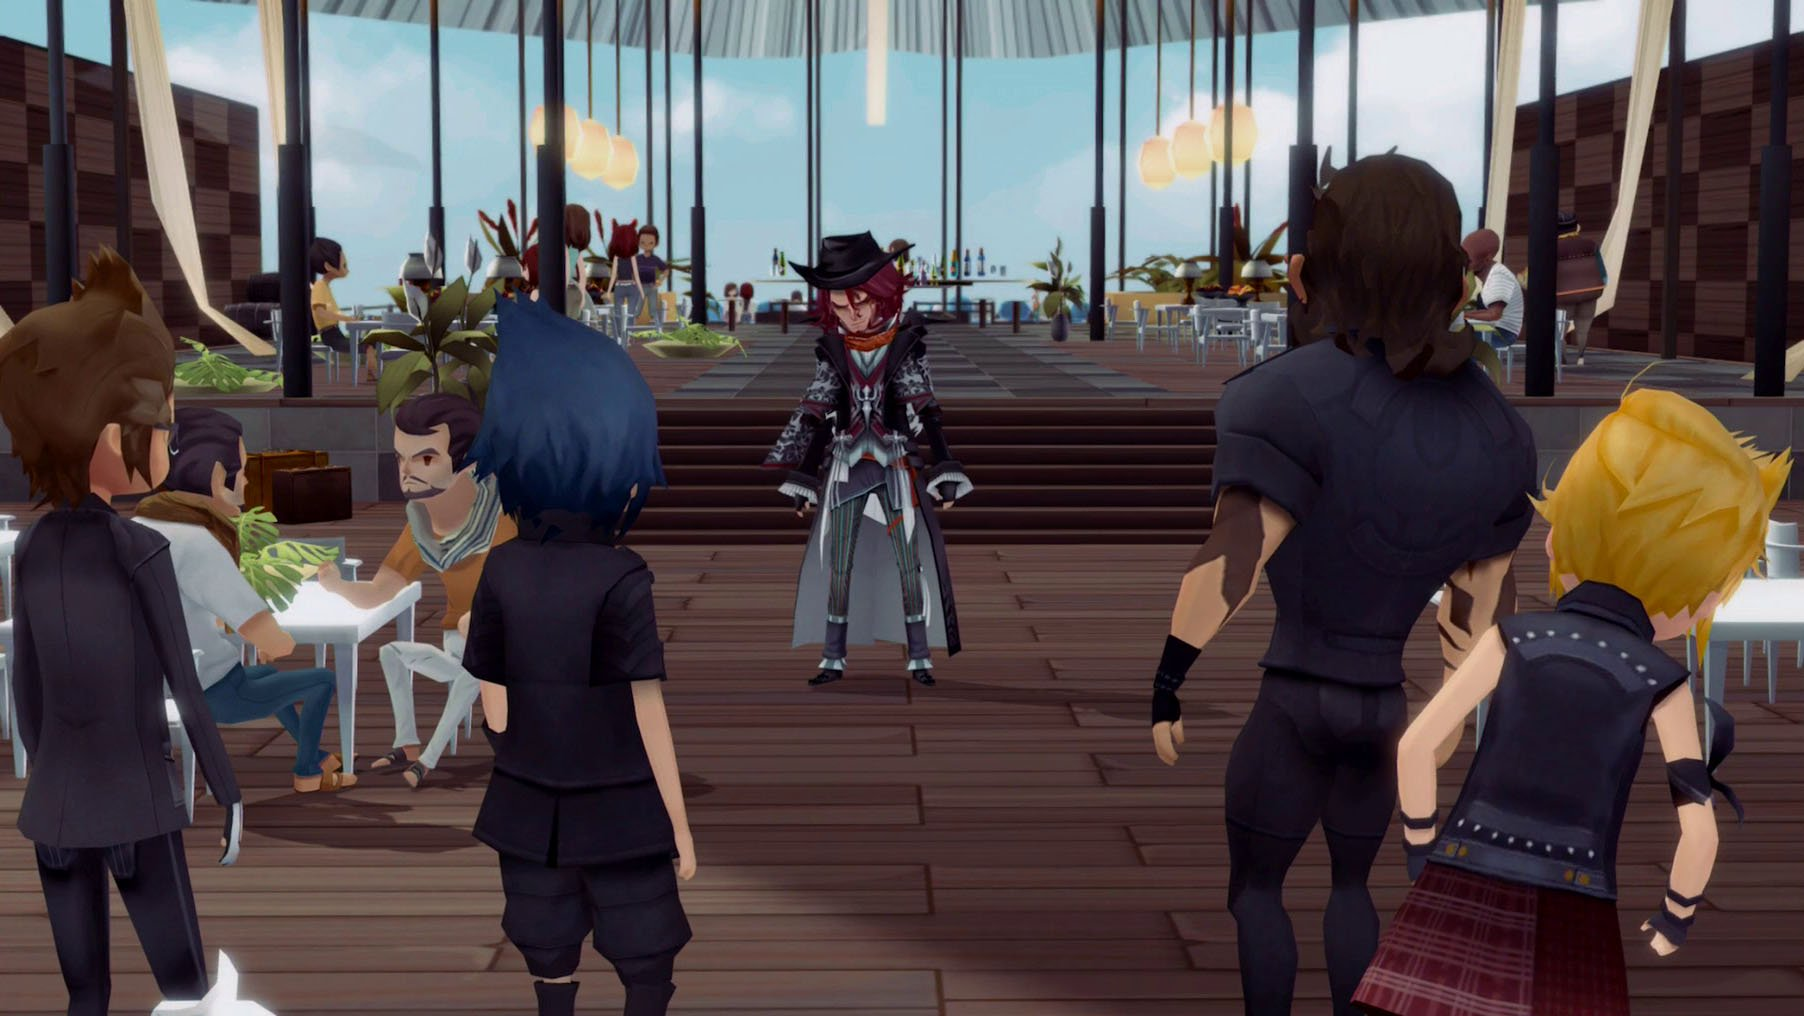 Final Fantasy XV: Pocket Edition is out today and it's kind of awesome screenshot